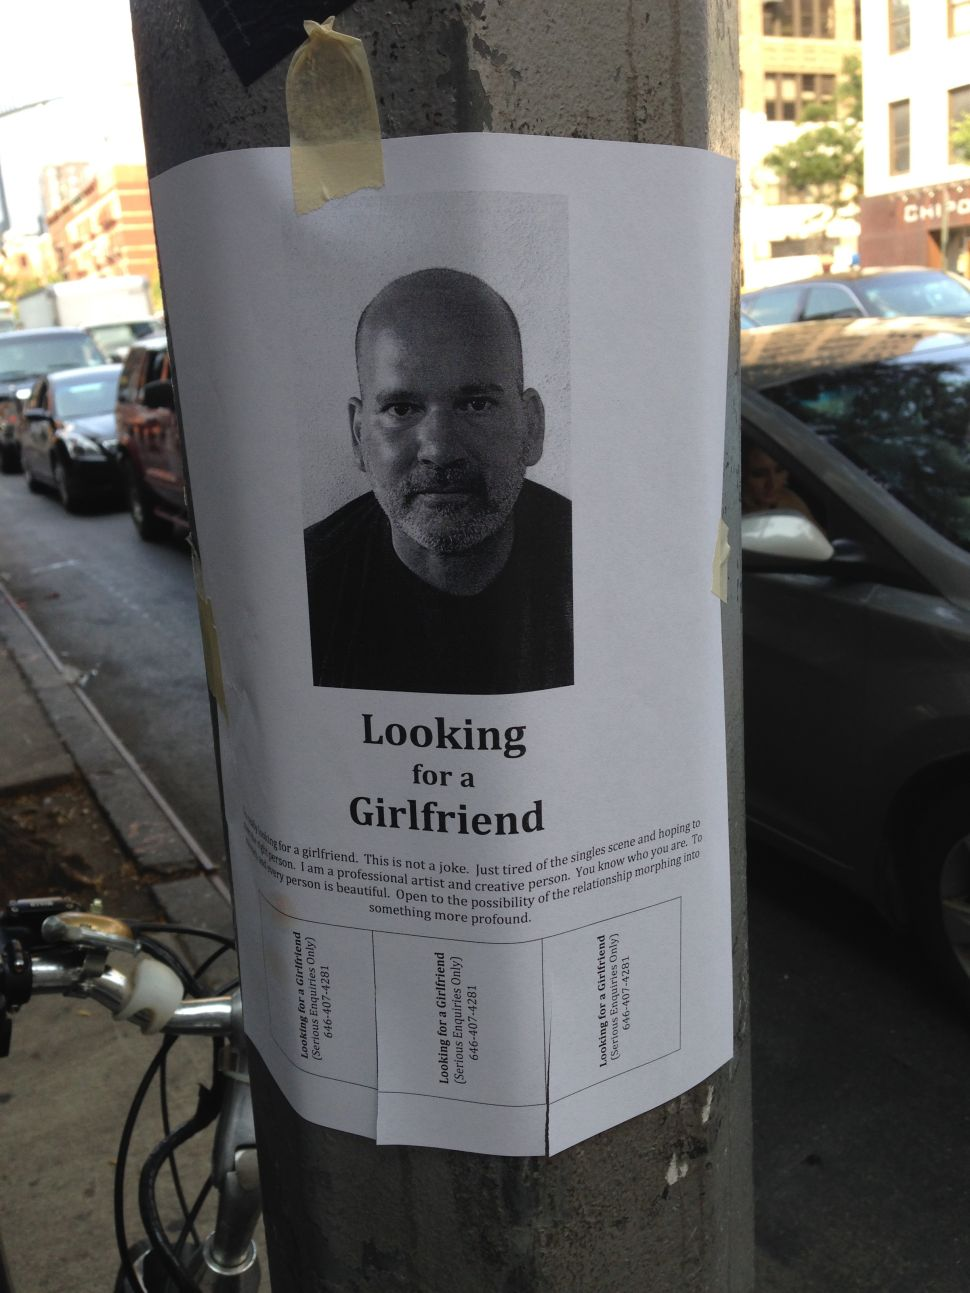 Man Hangs Thousands of Flyers in Attempt to Find Love